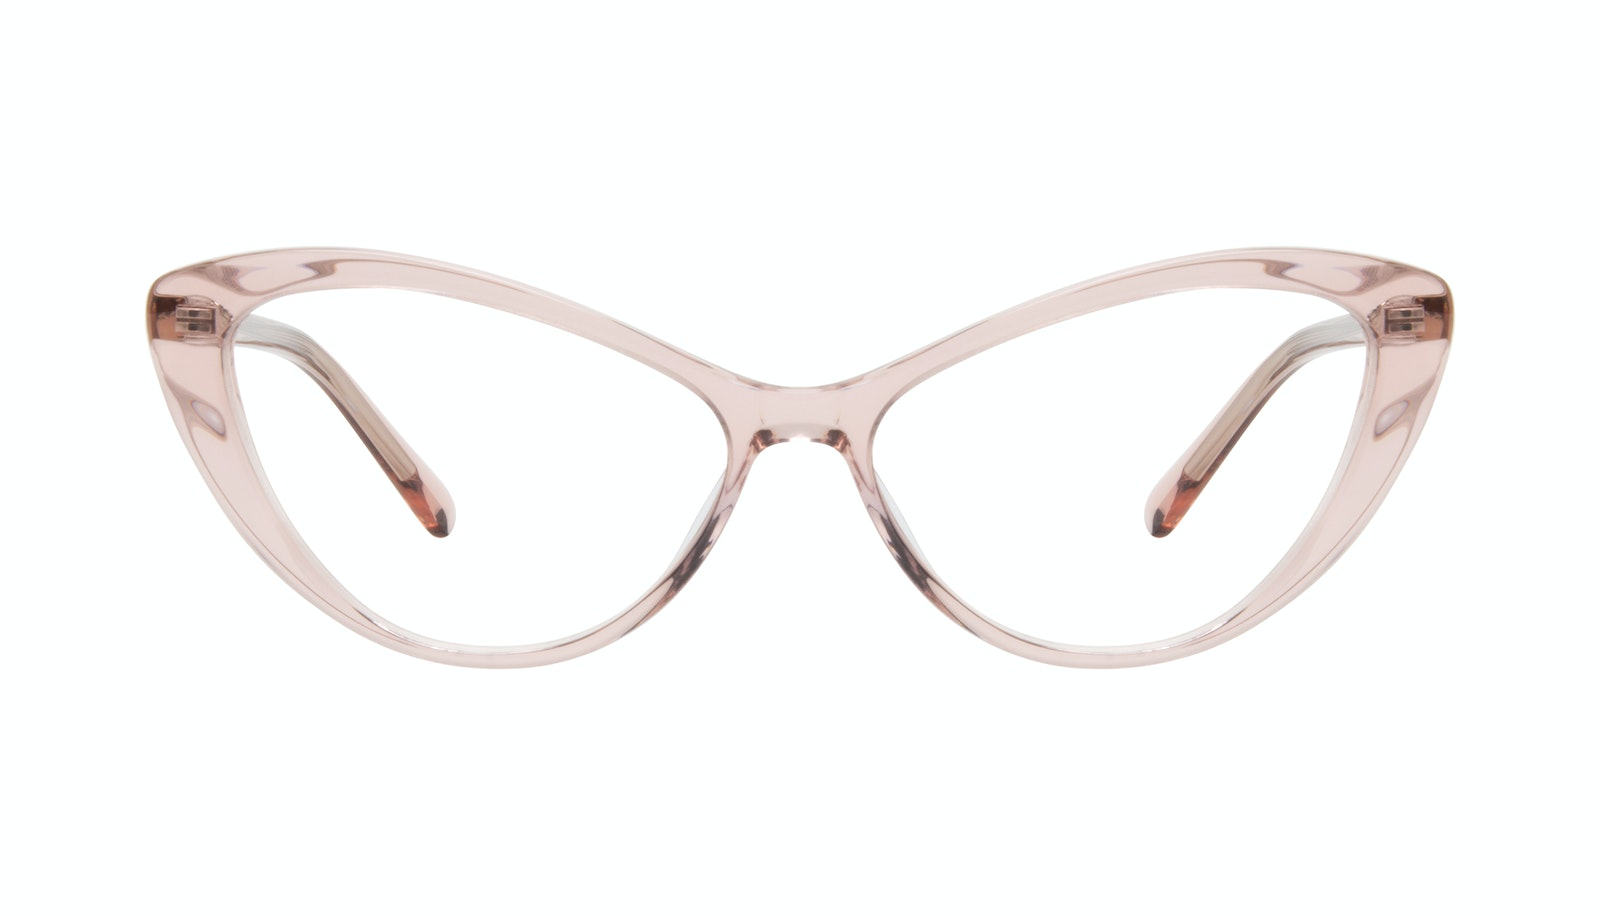 Affordable Fashion Glasses Cat Eye Eyeglasses Women Gossamer Pink